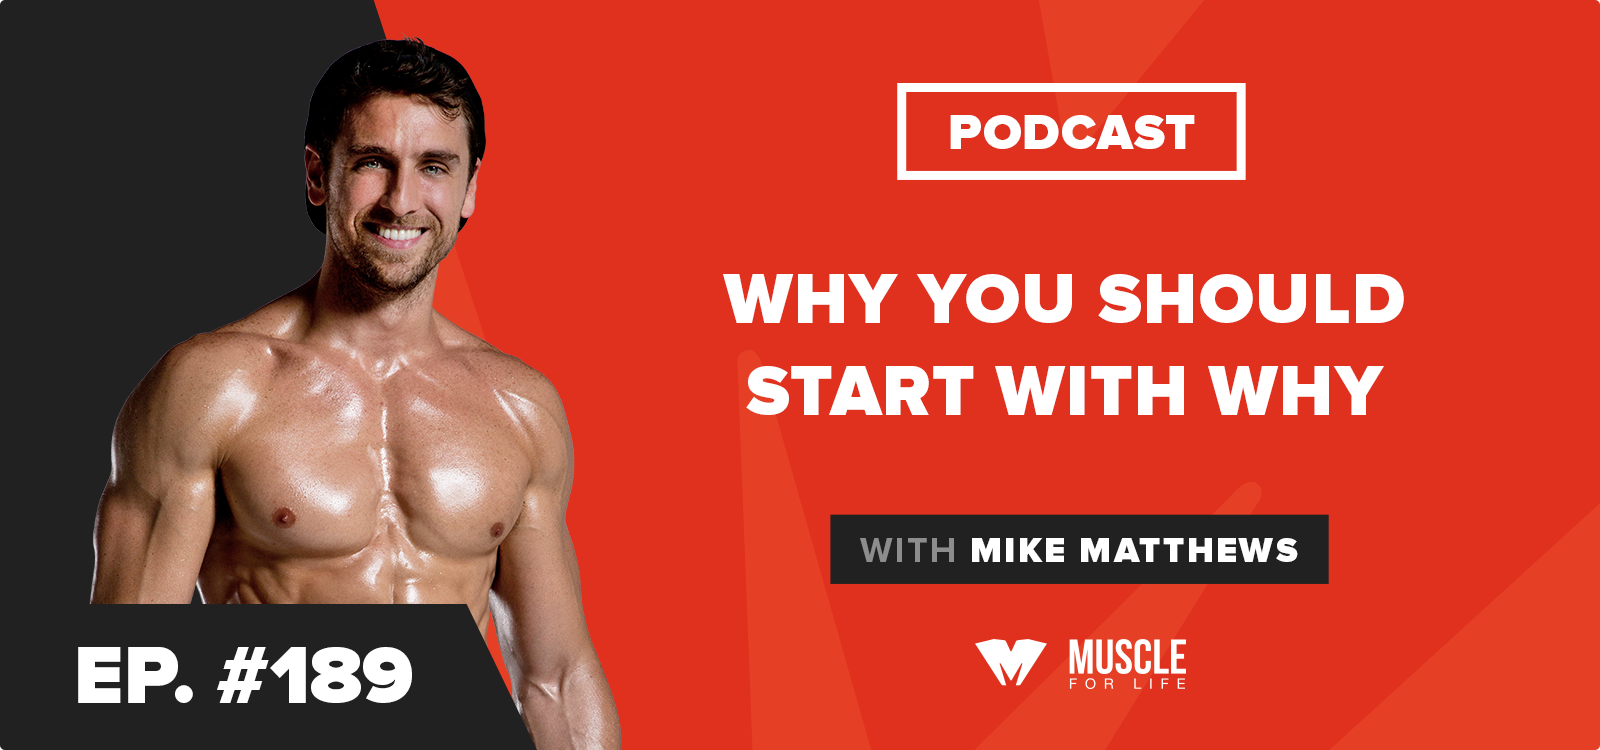 Motivation Monday: Why You Should Start With Why